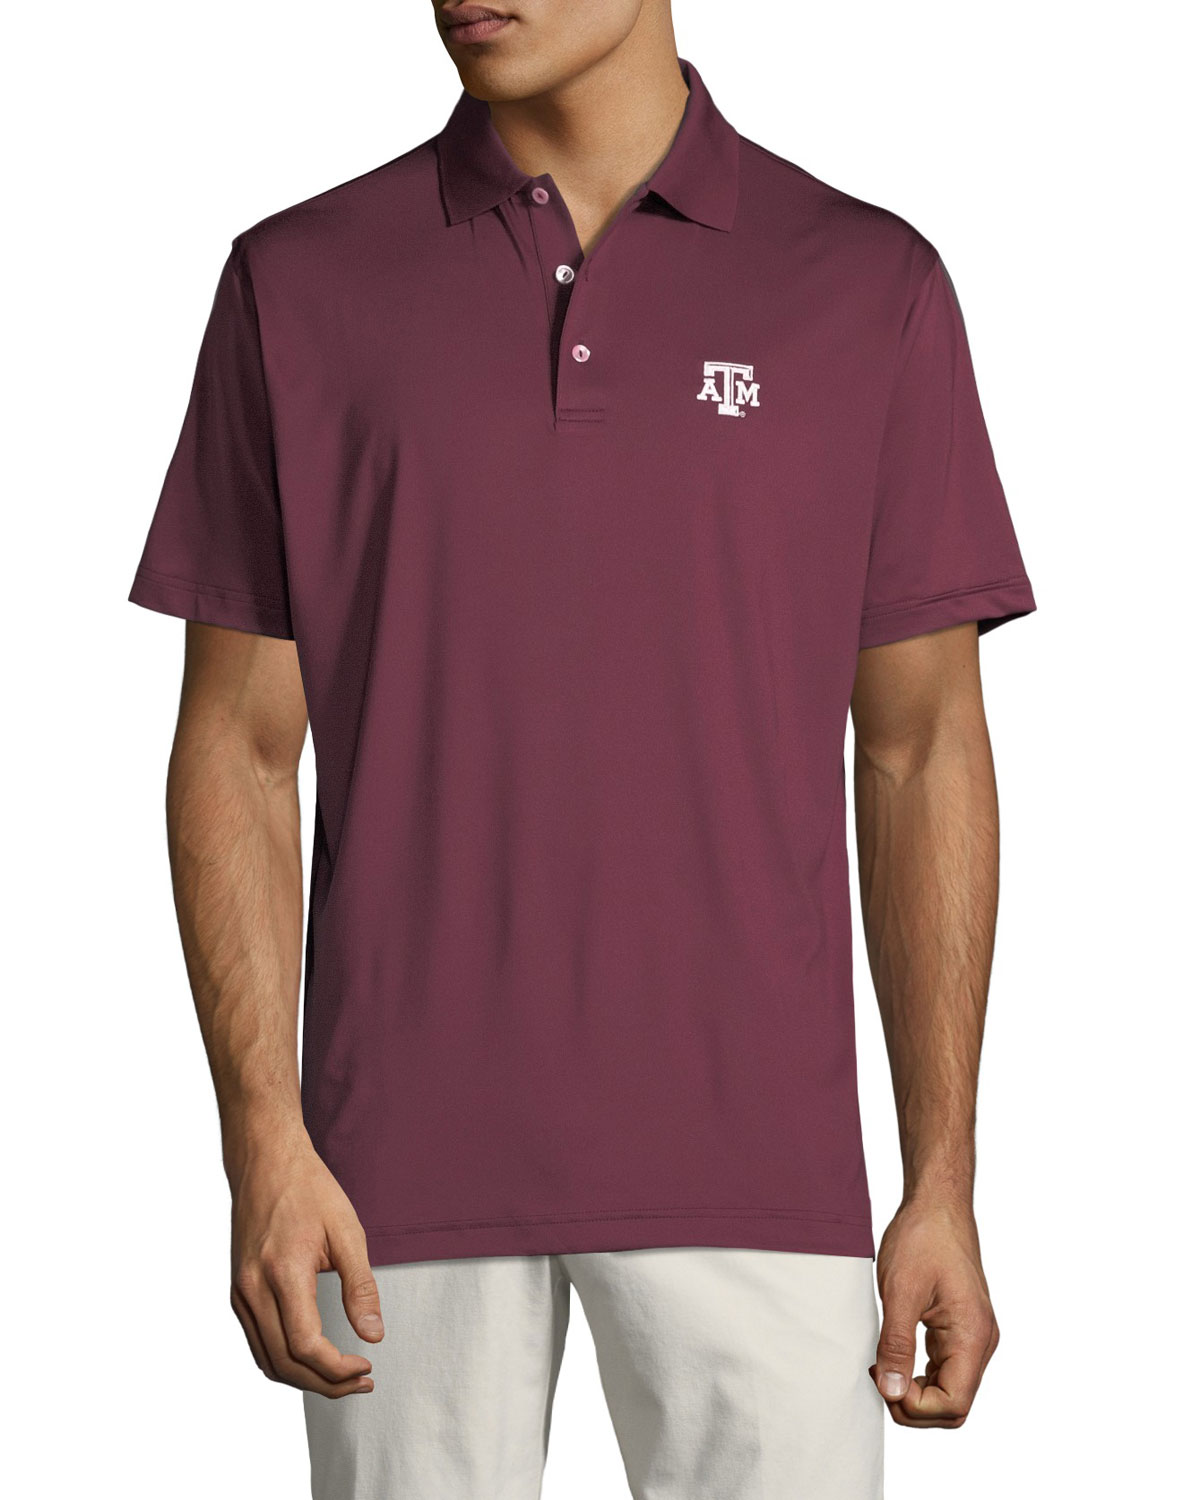 Peter Millar Mens Texas Am Solid Stretch Jersey Polo Shirt Maroon